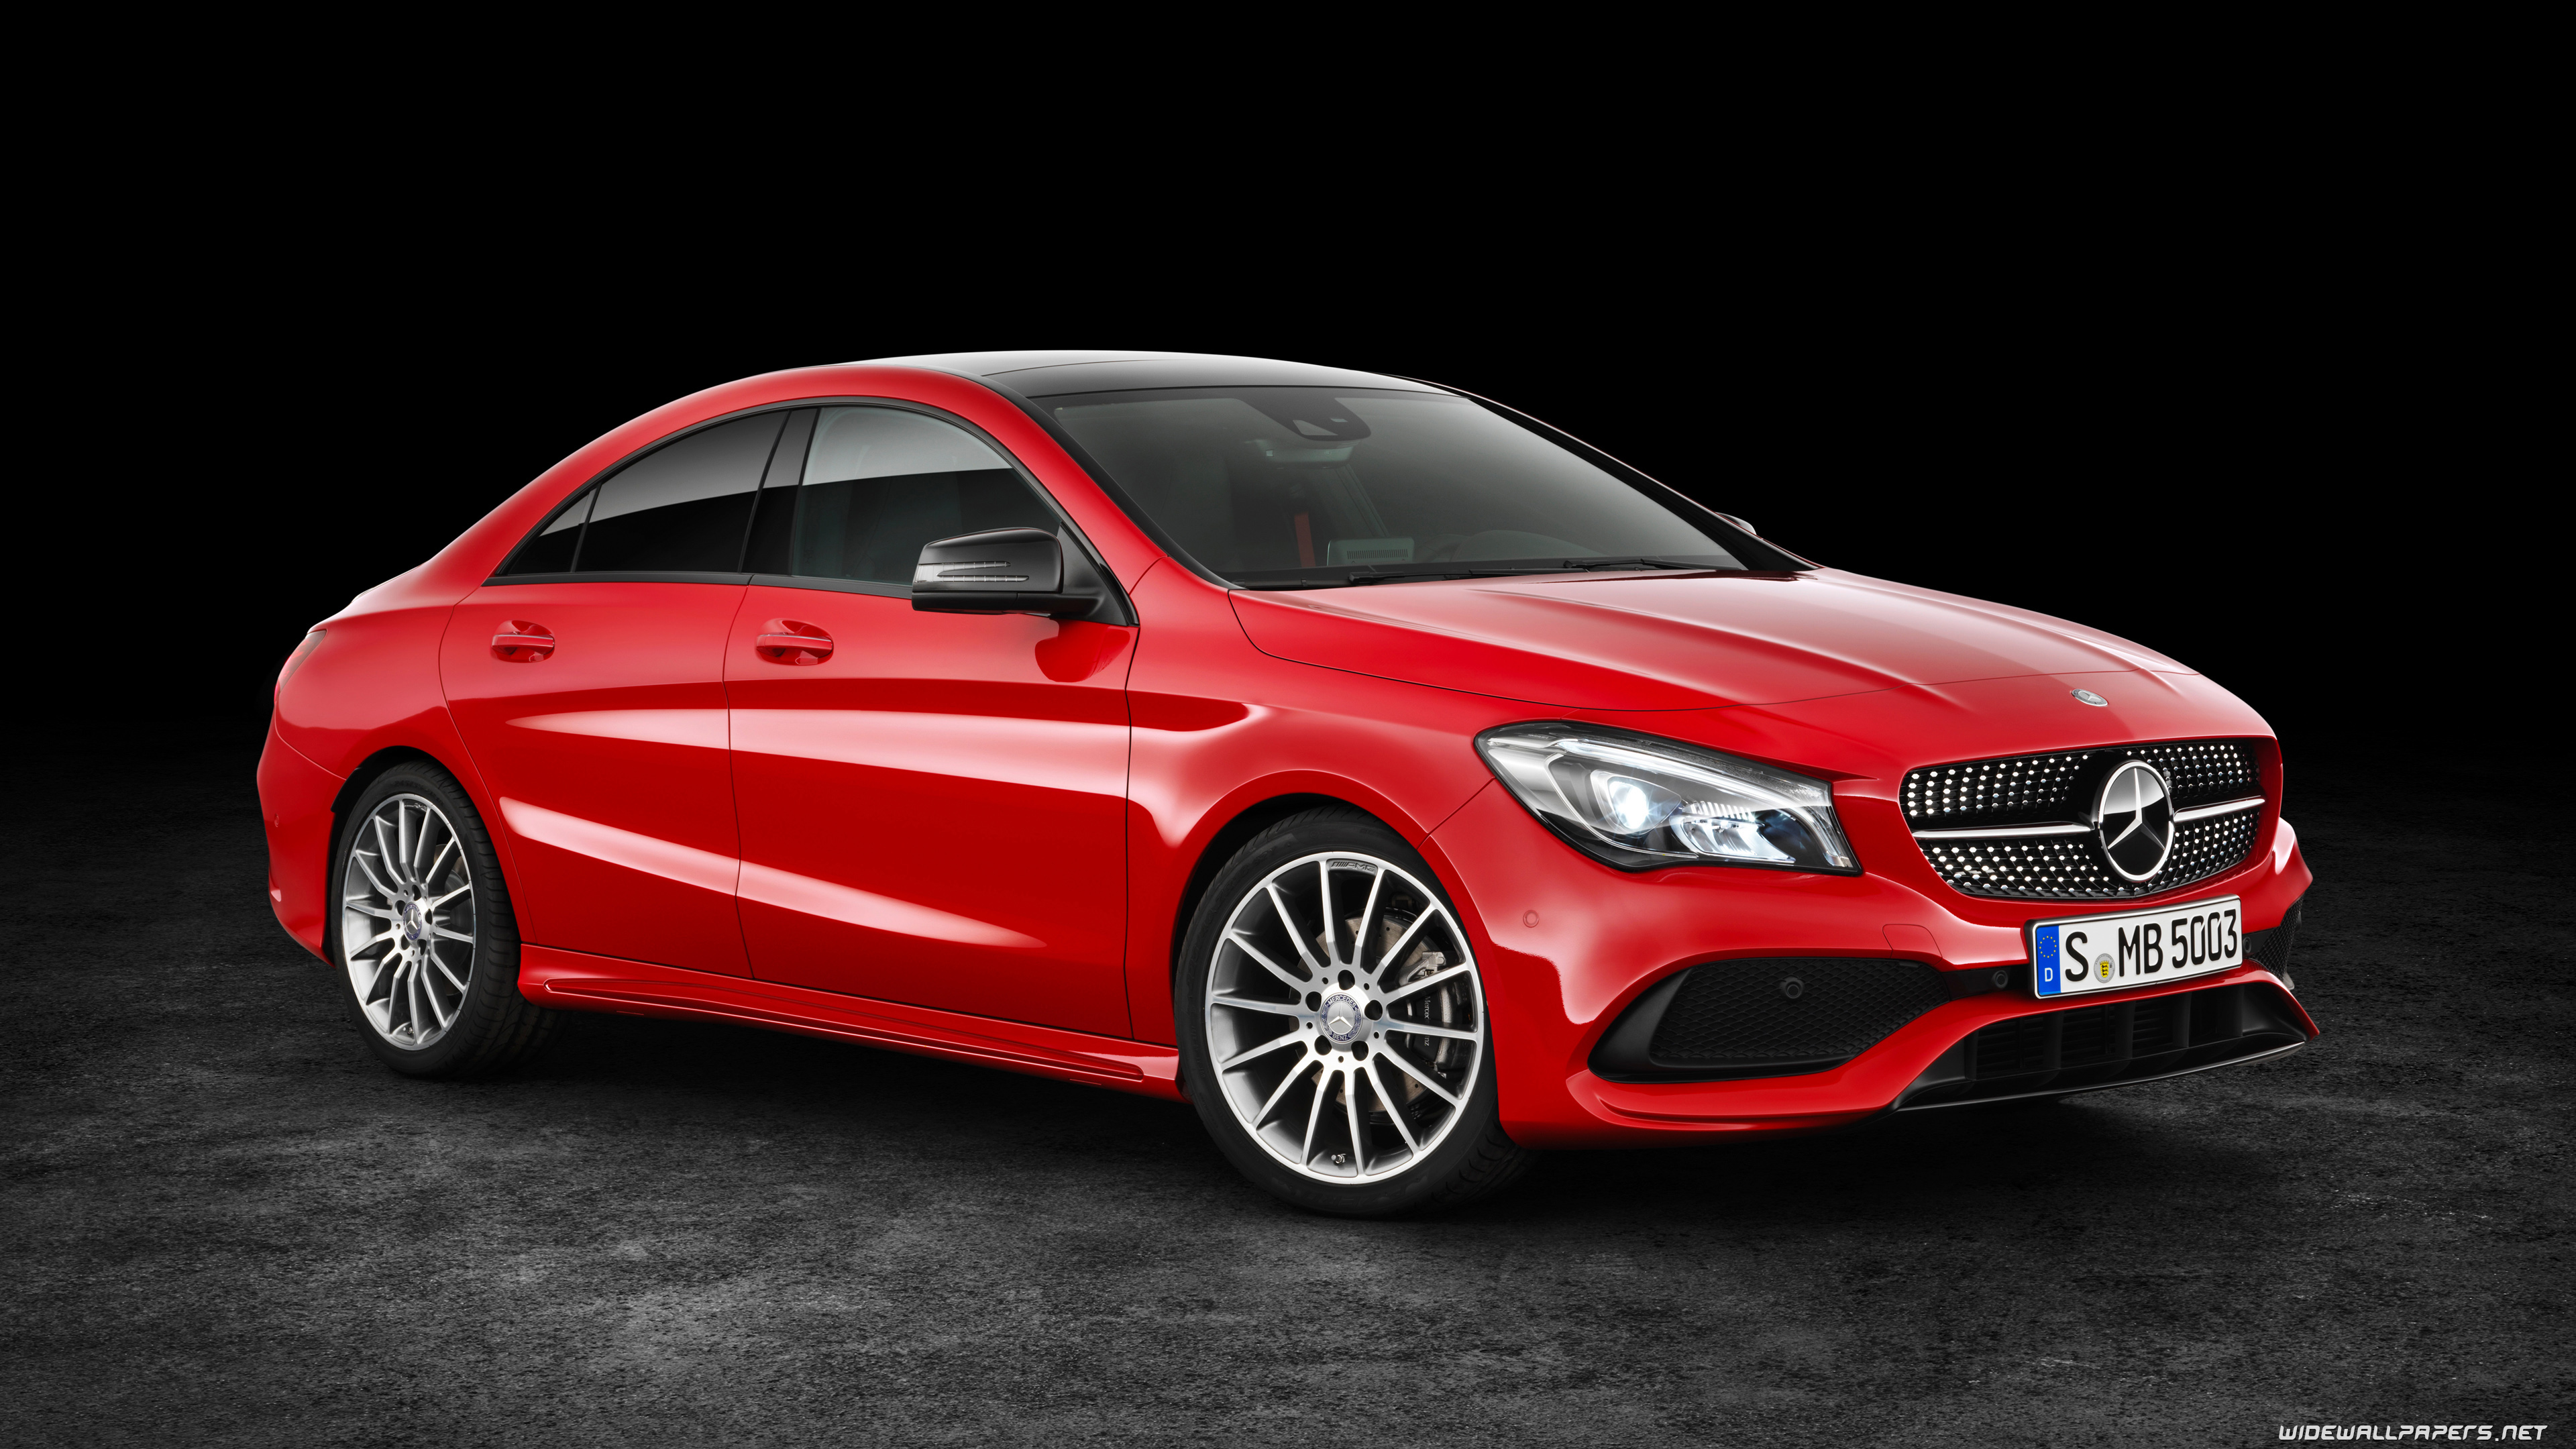 mercedes-benz cla-class cars desktop wallpapers 4k ultra hd